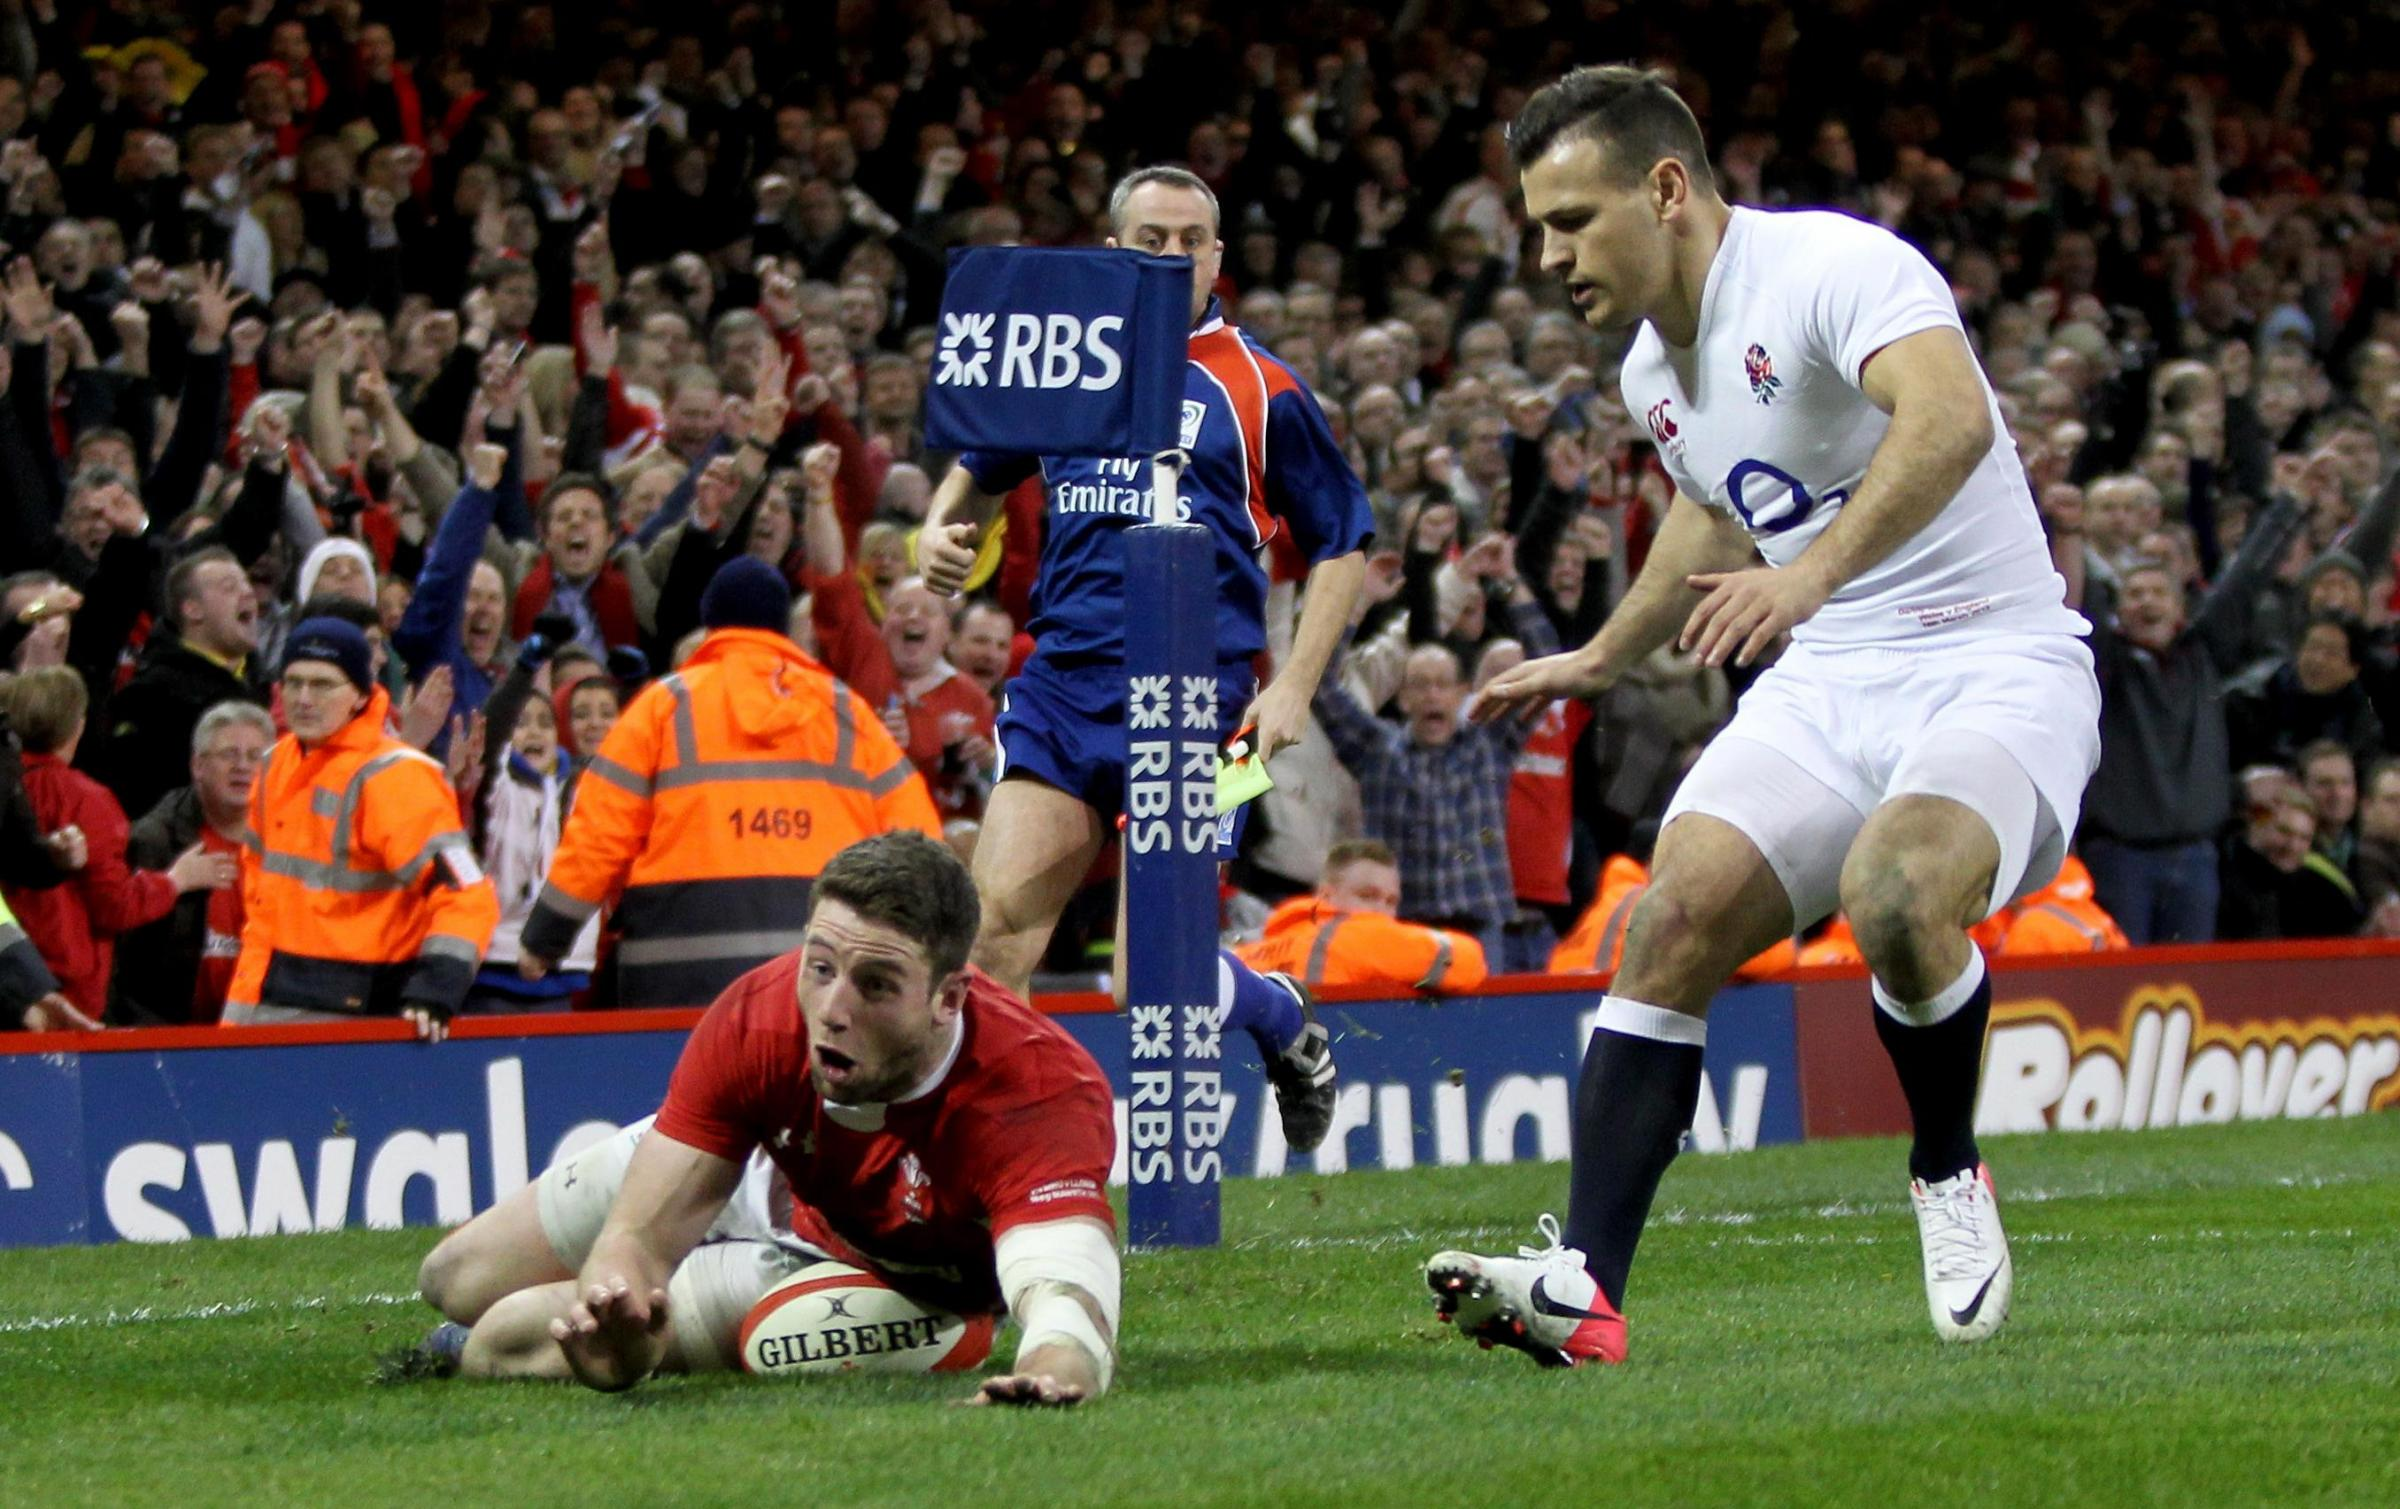 JUST CHAMPION: Alex Cuthbert scored two tries as Wales clinched the 2013 Six Nations title with victory over England